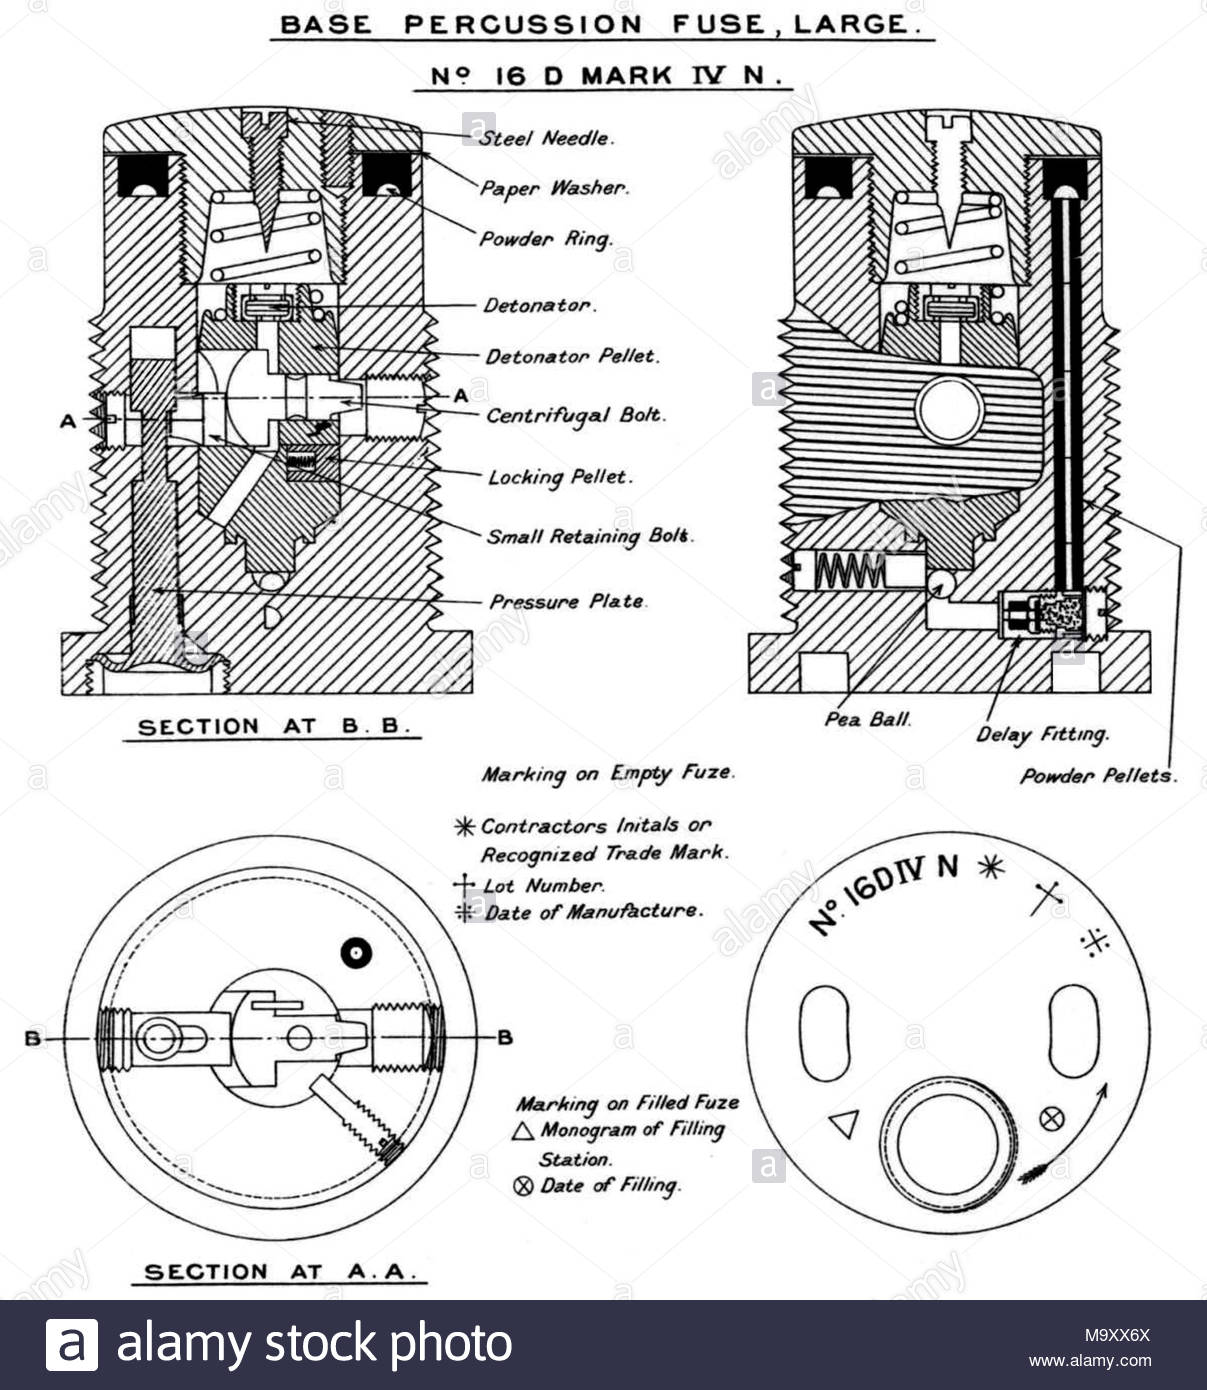 Armour piercing stock photos armour piercing stock images alamy diagram of british no 16 d mk iv n base percussion fuze large pooptronica Choice Image